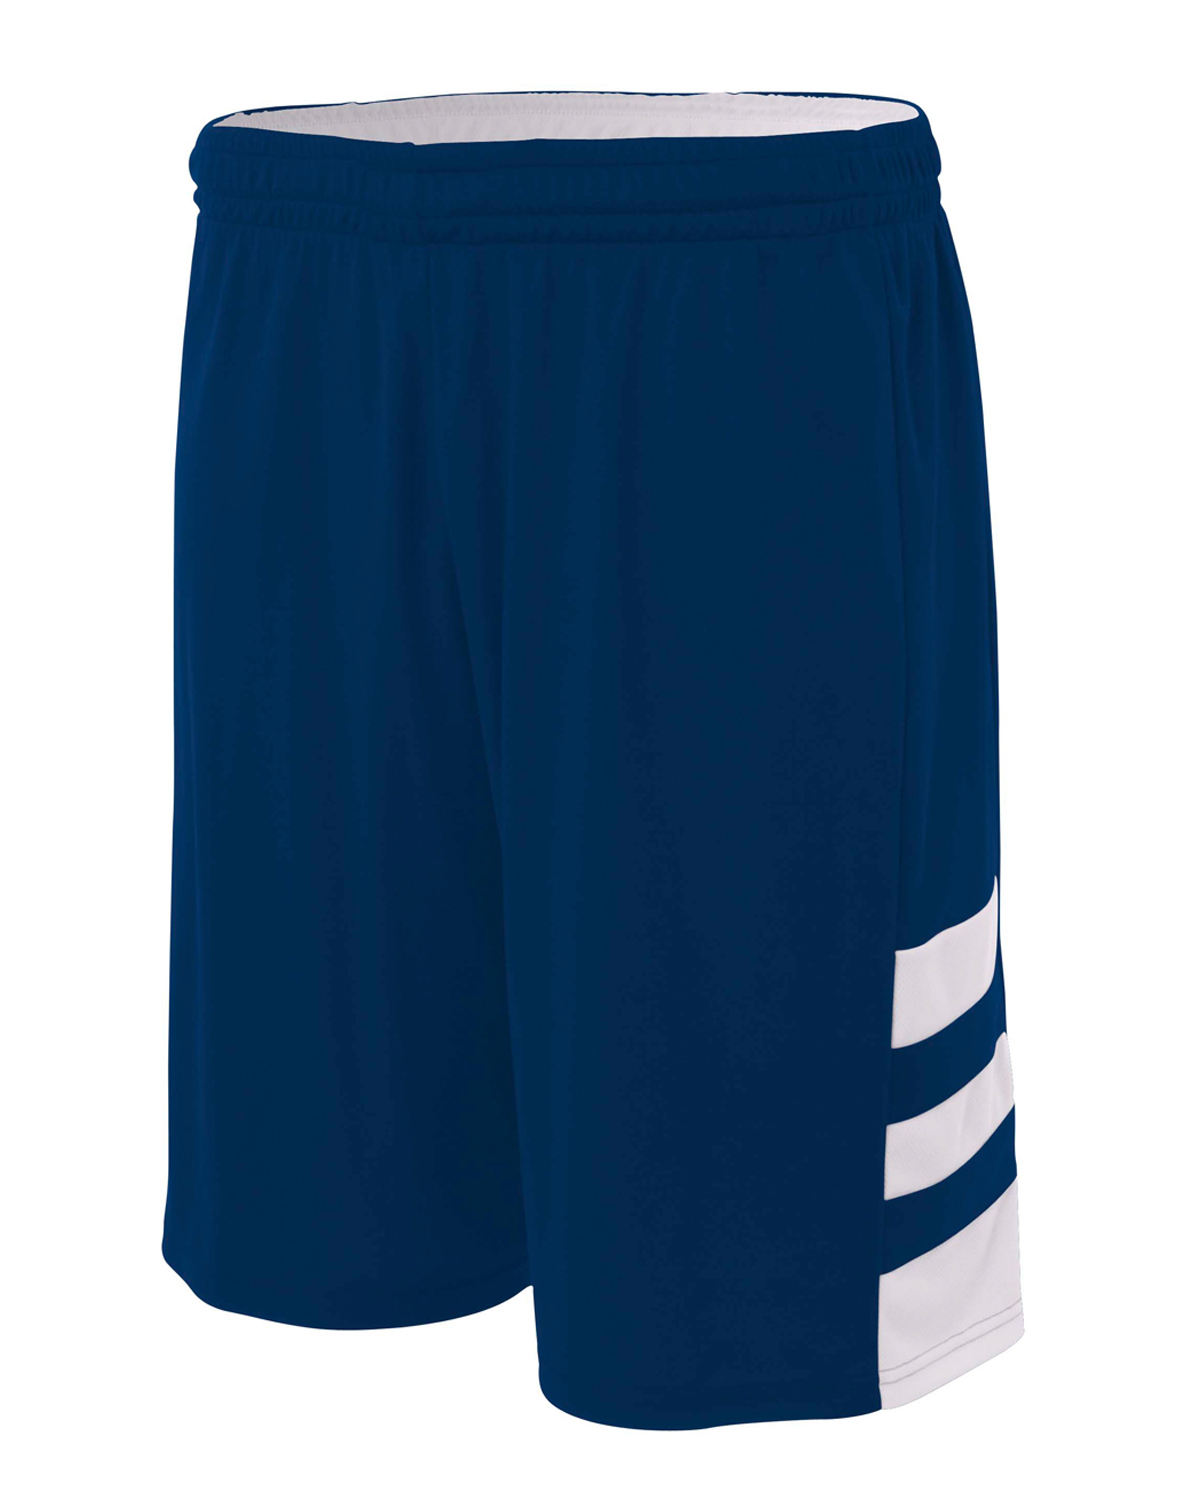 "A4 Drop Ship N5334 - Adult 10"" Inseam Reversible Speedway Shorts"